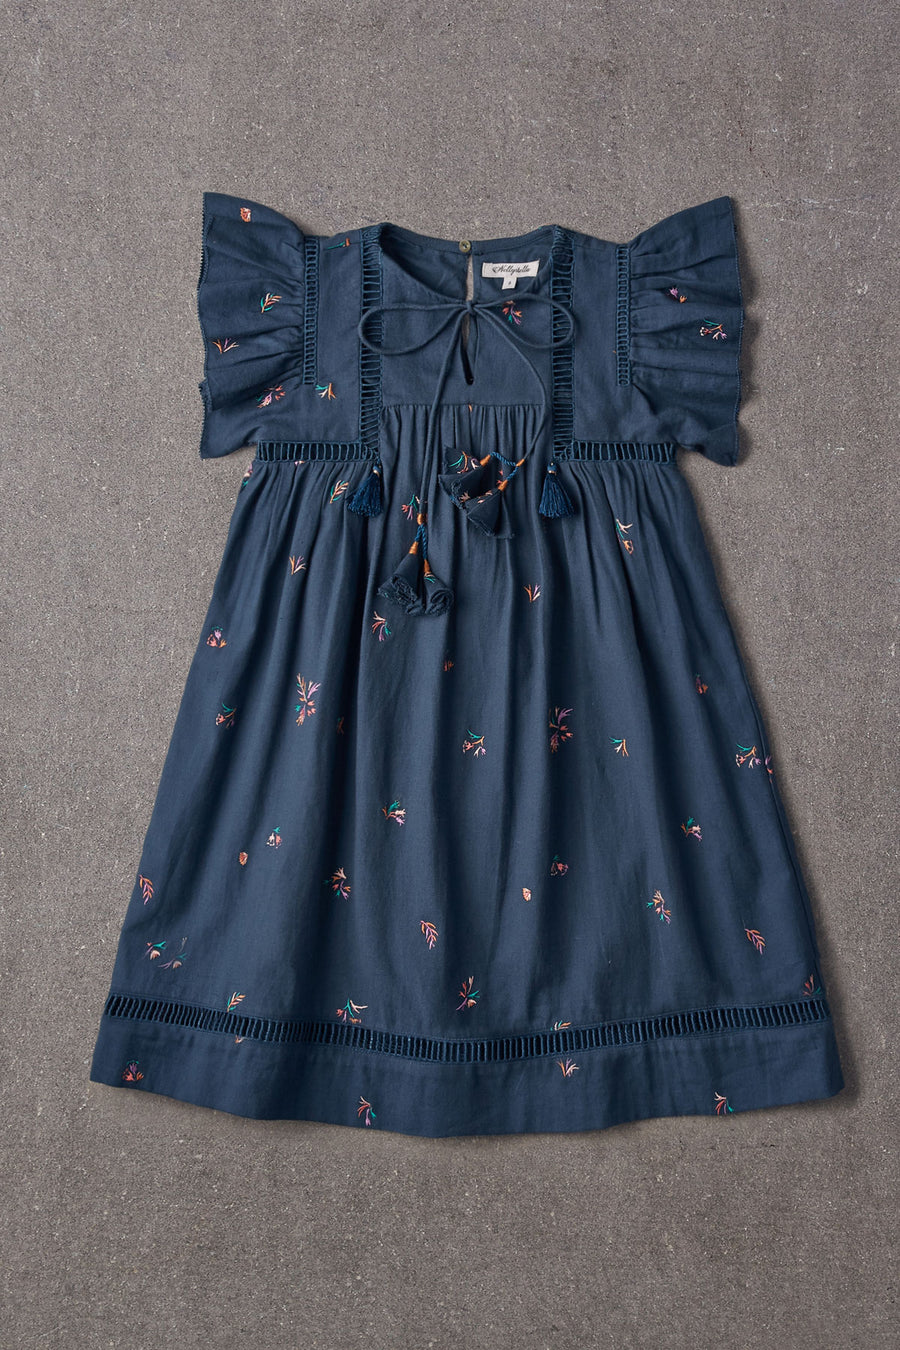 Nellystella Ester Dress - Autumn Melody Embroidery